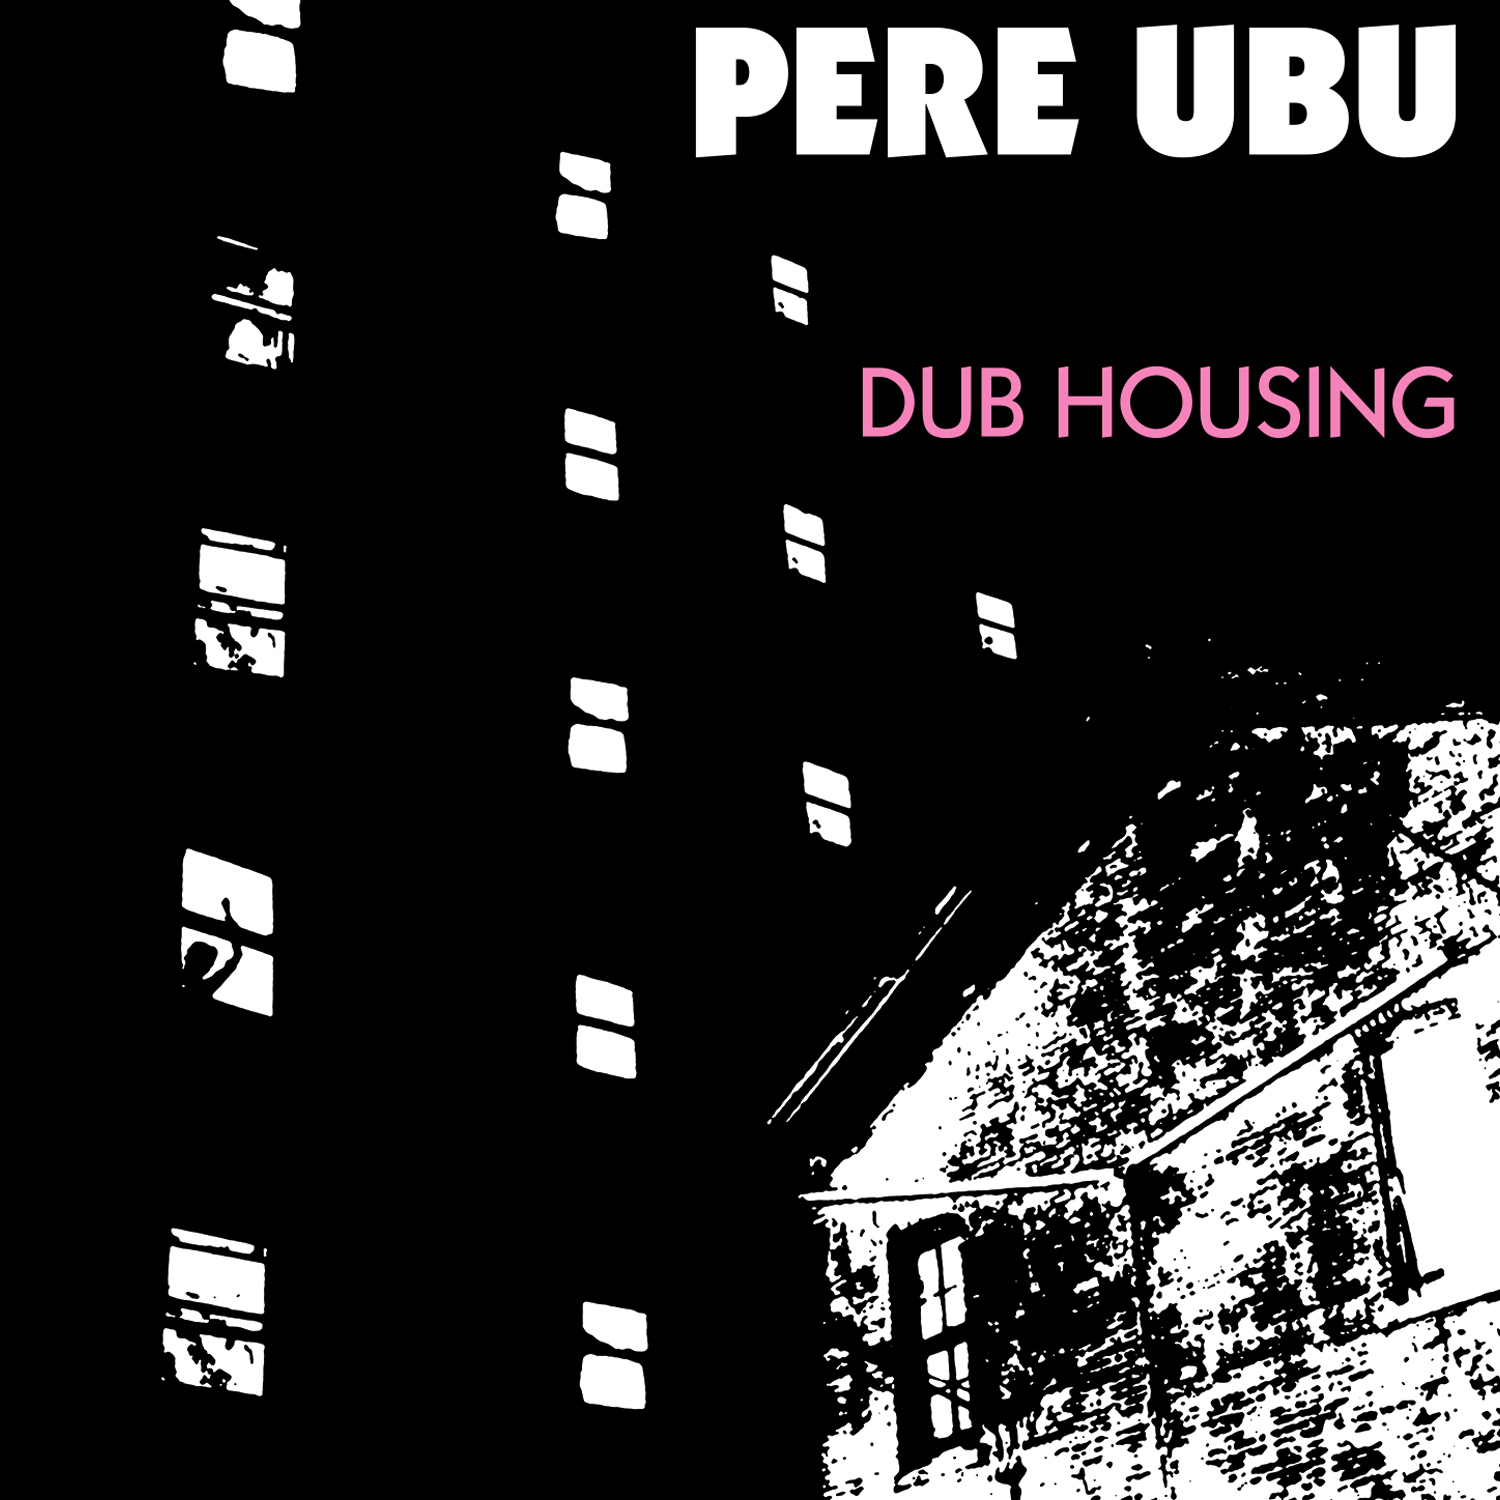 Pere Ubu Dub Housing Lp Fire Records